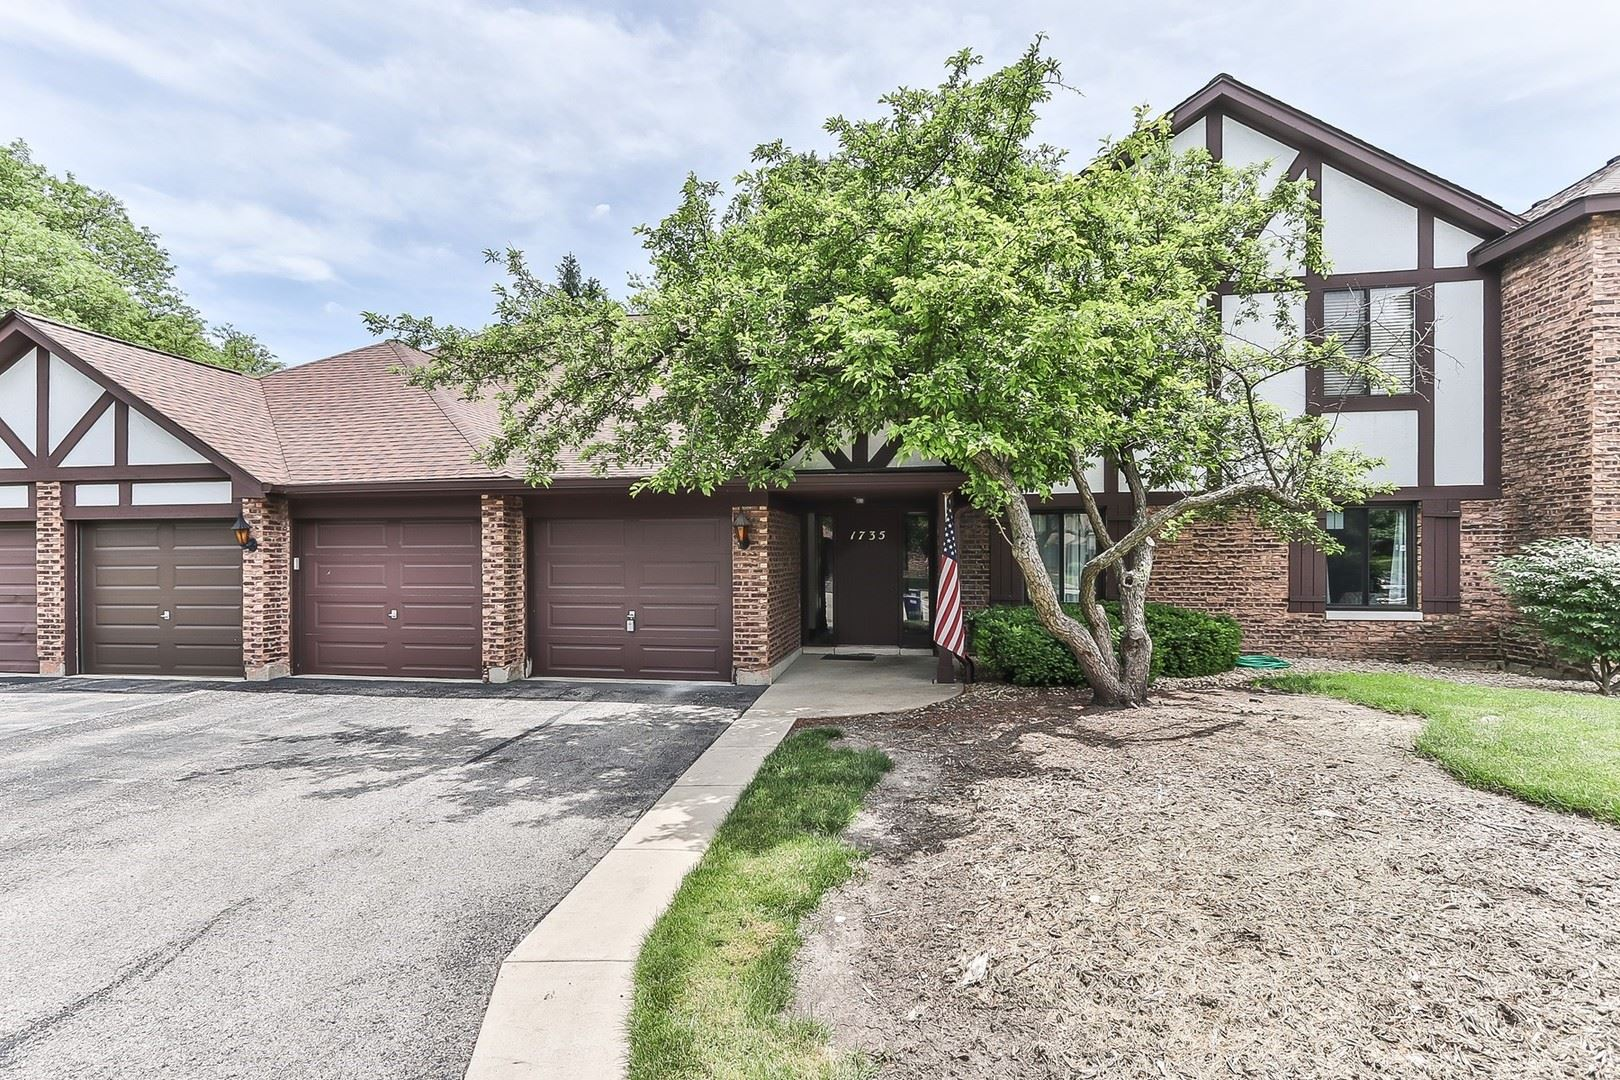 1735 Harrow Court #A, Wheaton, IL 60189 - #: 10738286